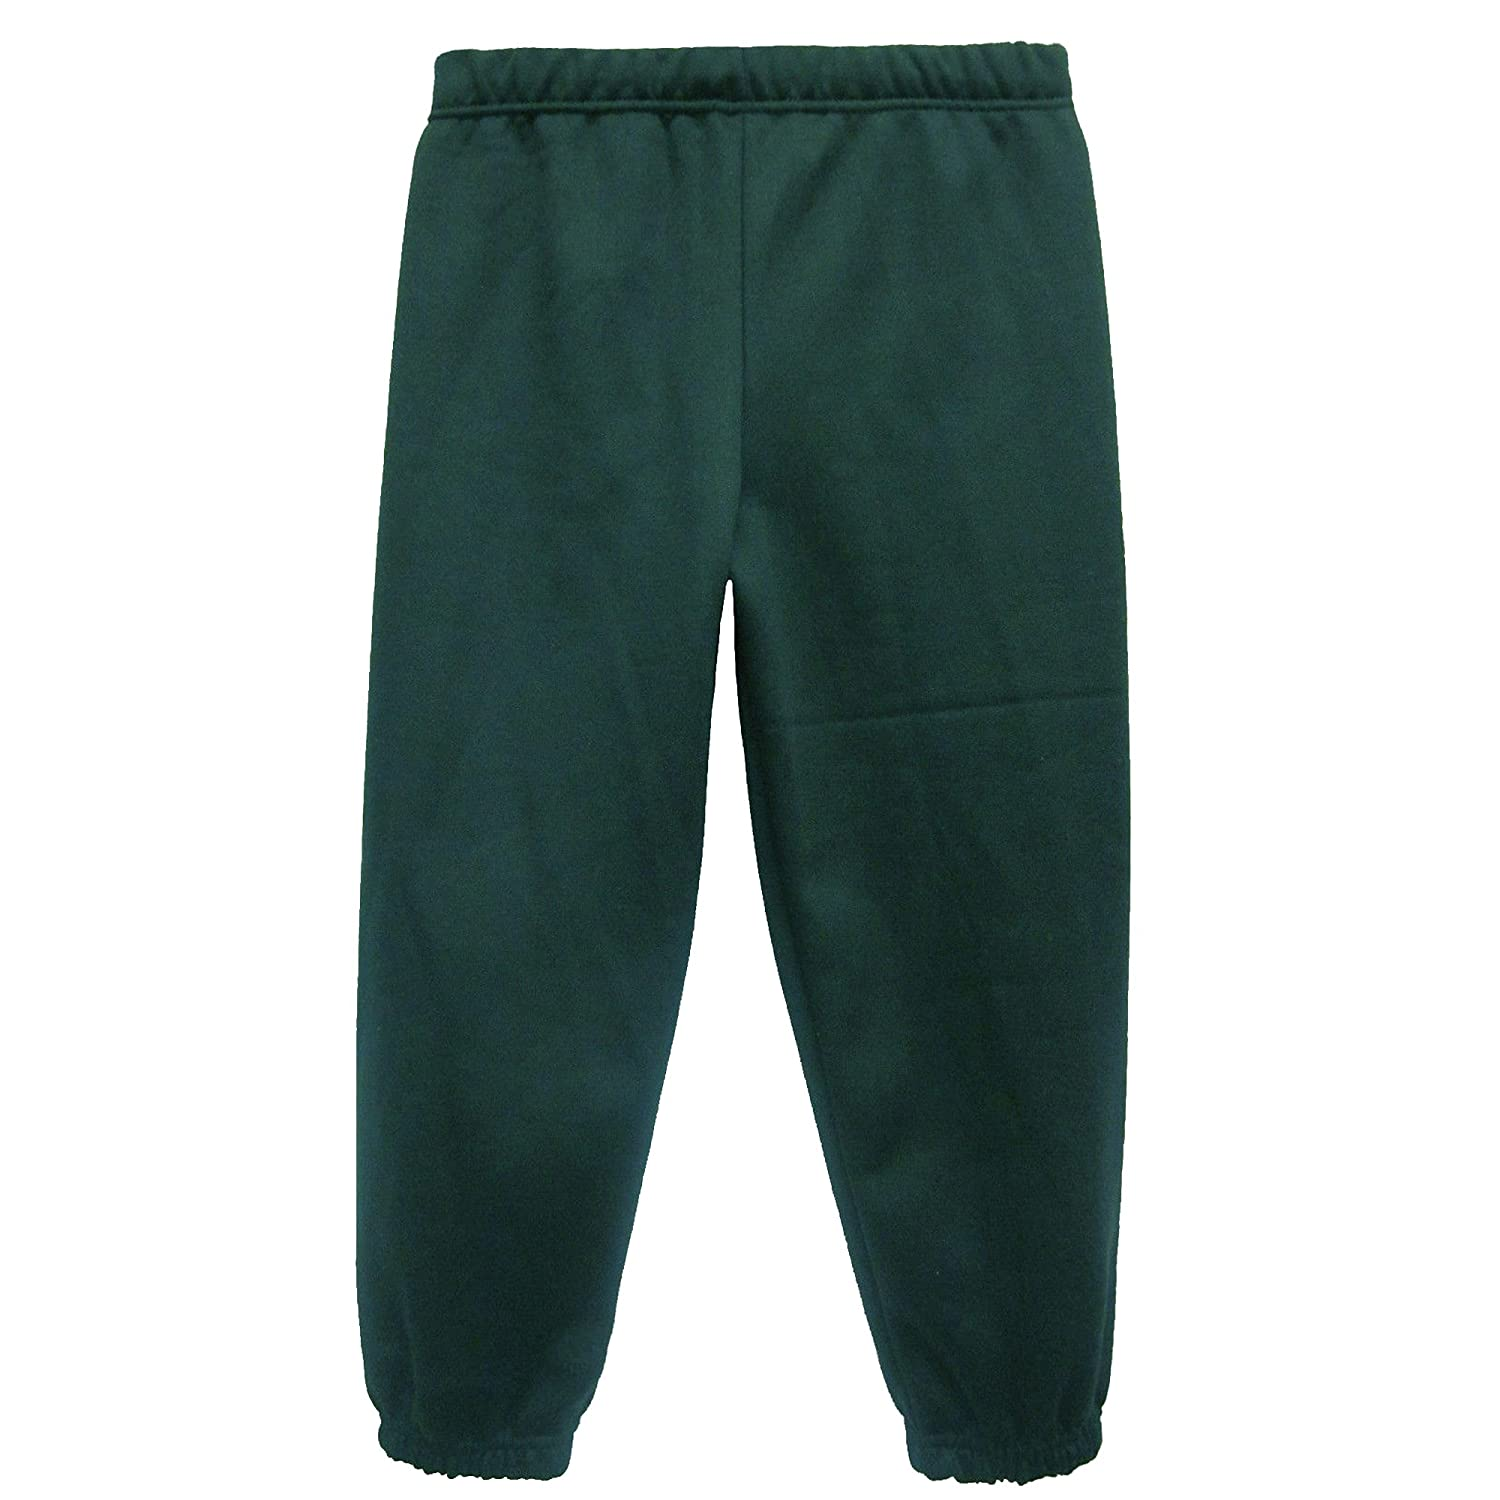 Body2Body Kids Warm Fleece Style Plain Casual Active Wear Joggers Bottom Pants Sizes 2-15 Years Age